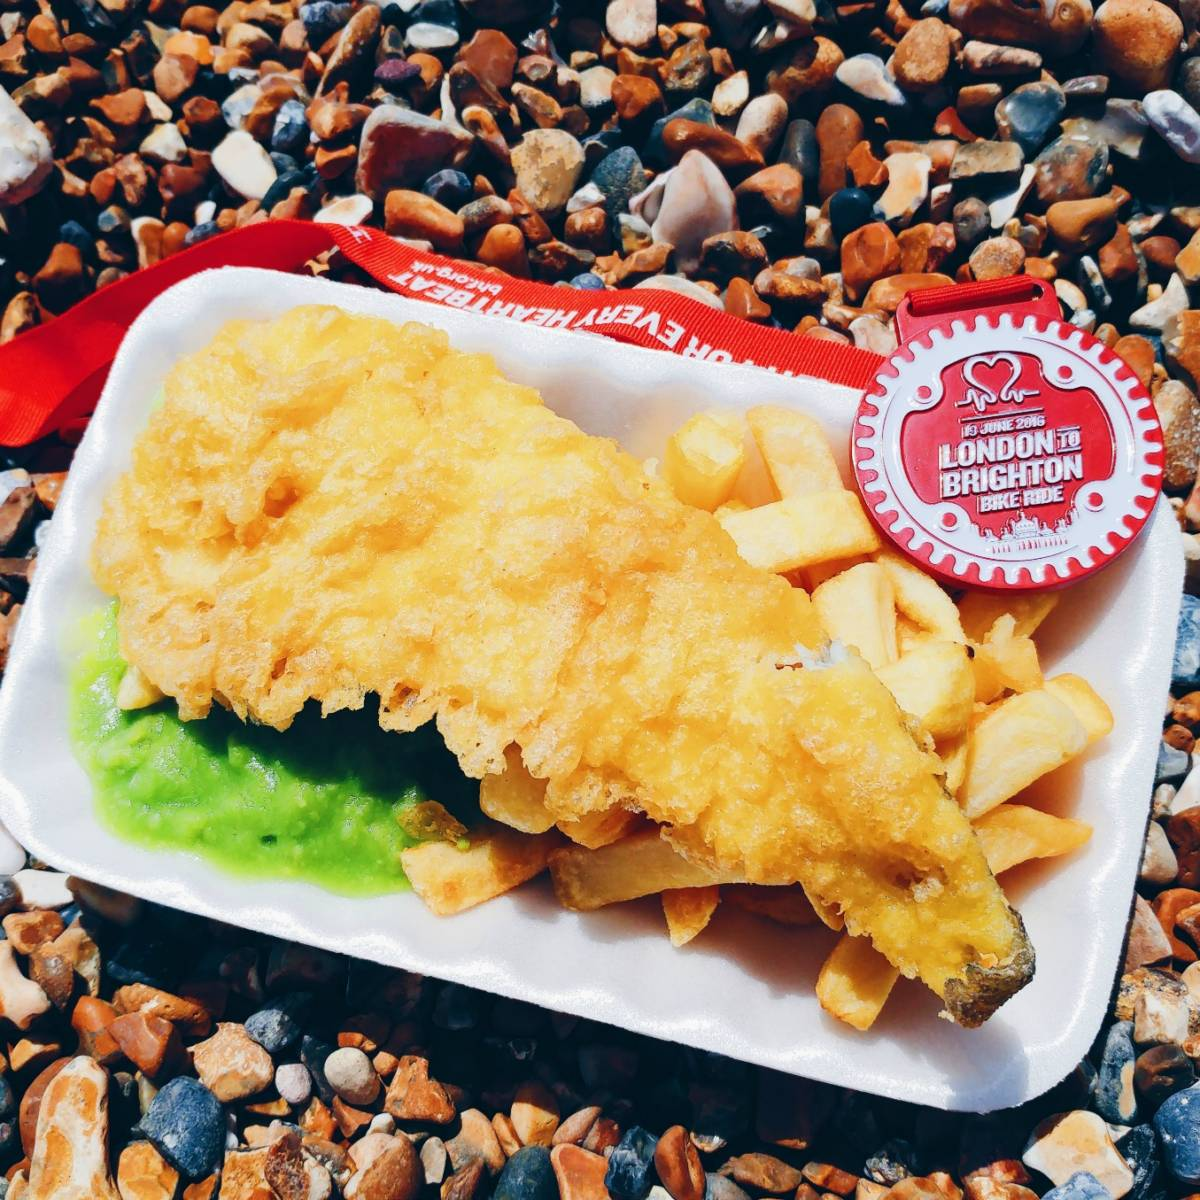 London to Brighton fish + chips